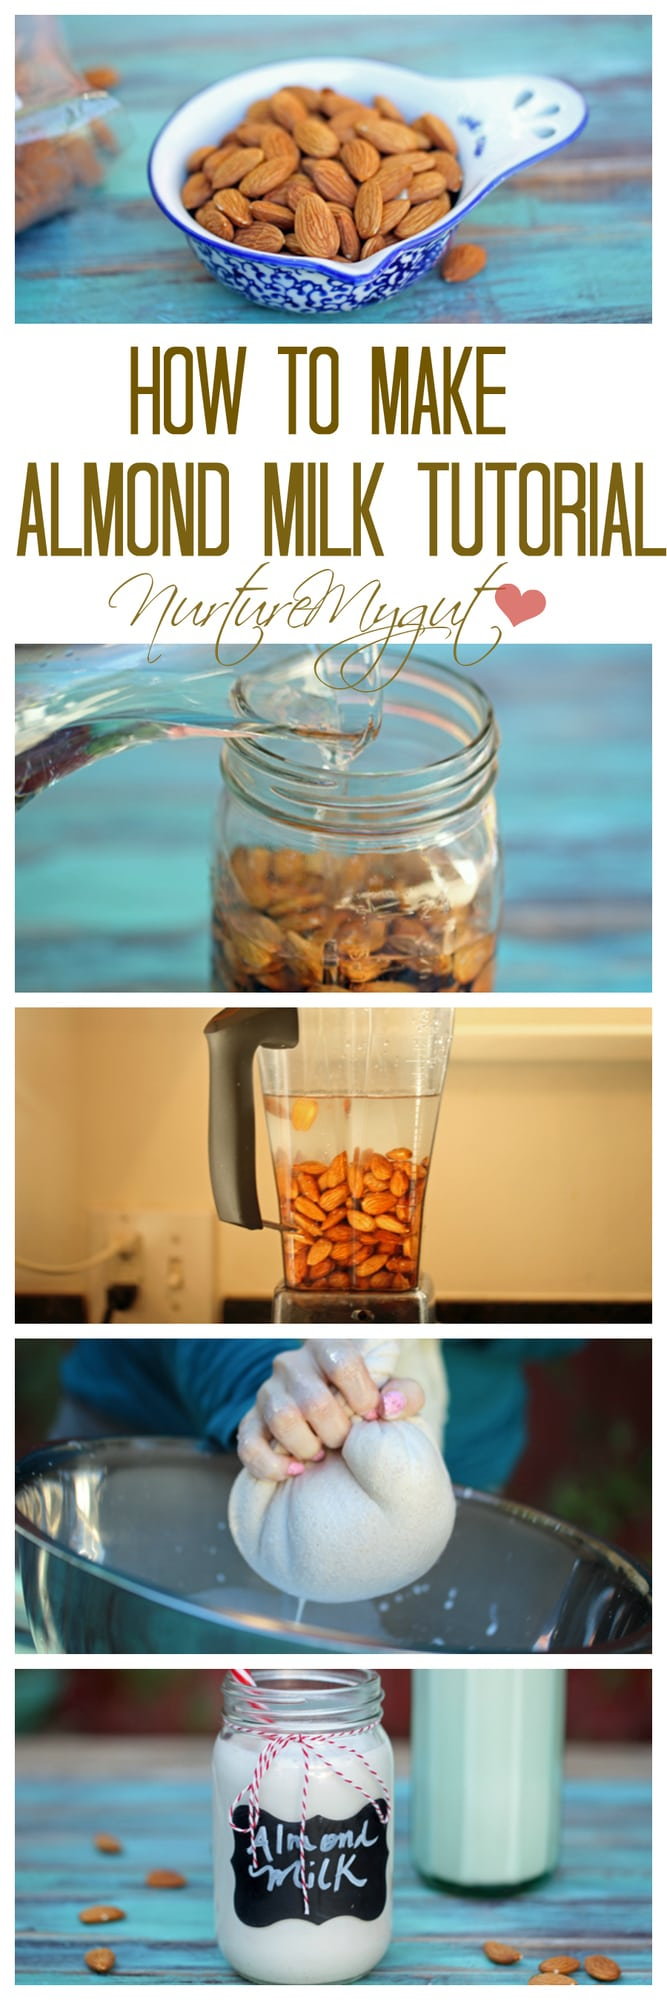 how to make almond milk tutorial